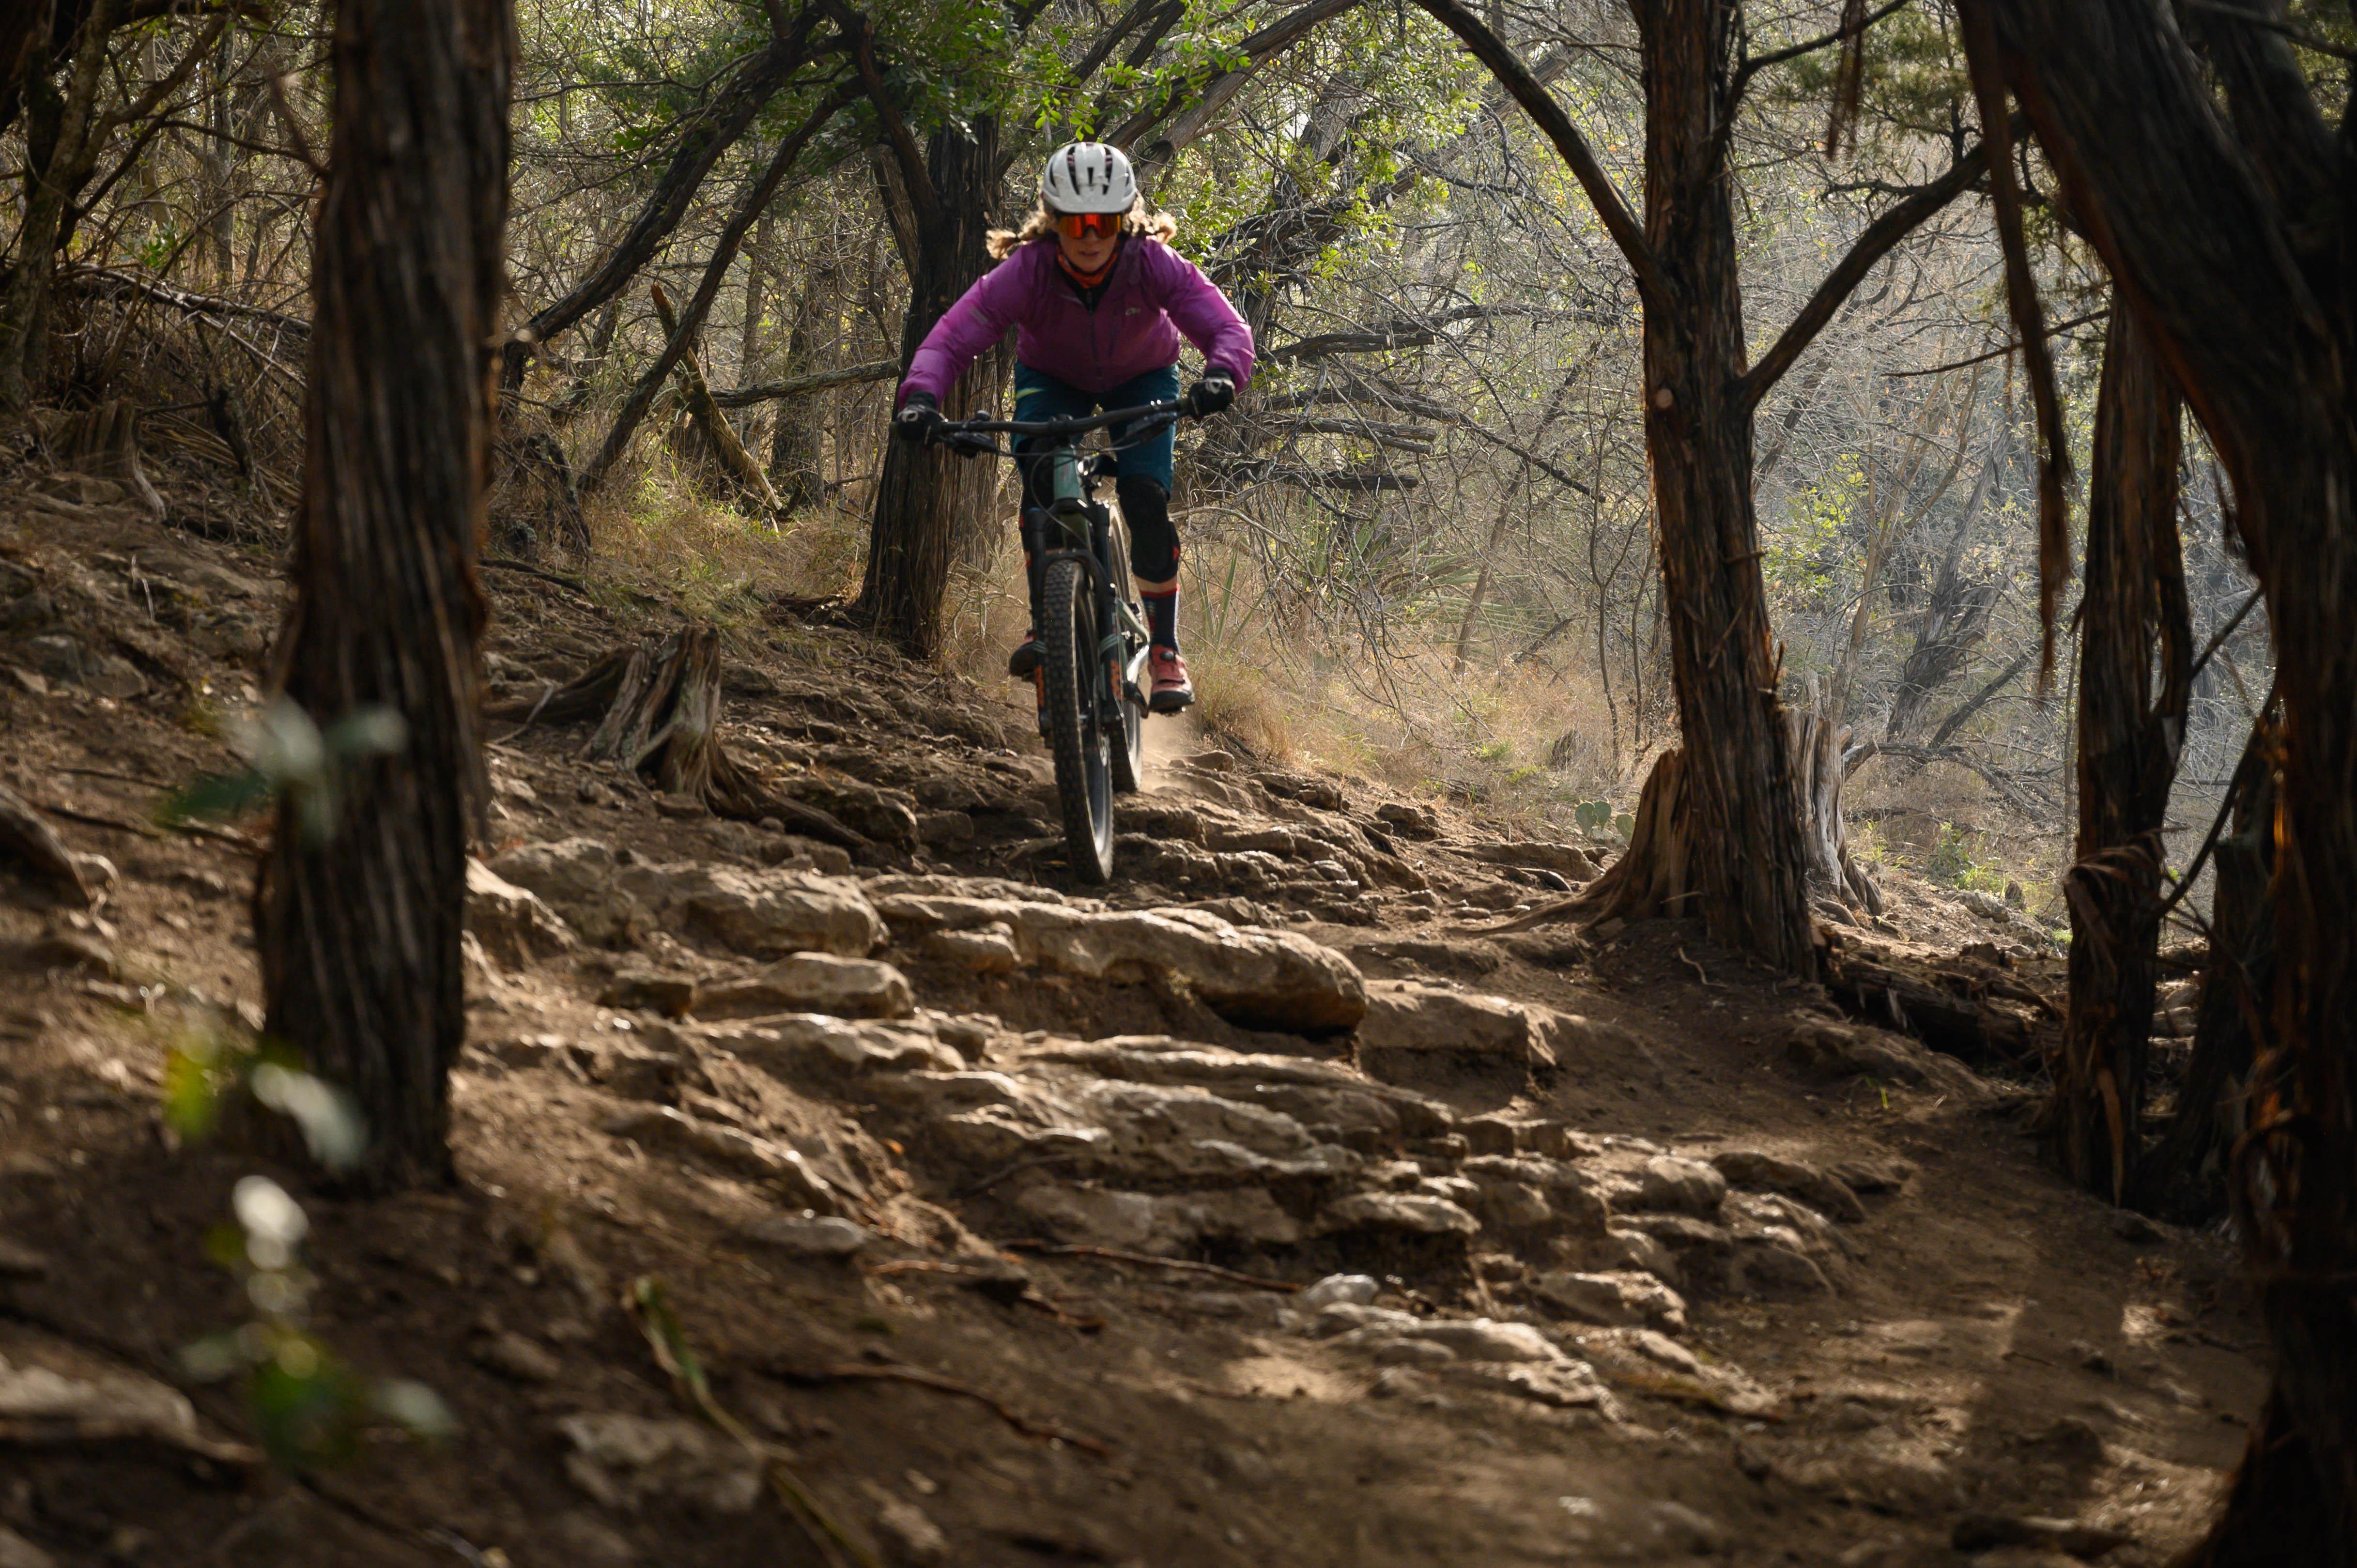 Sticky Icky is appropriately designated a black trail with tricky little off-camber tech sections like this one.